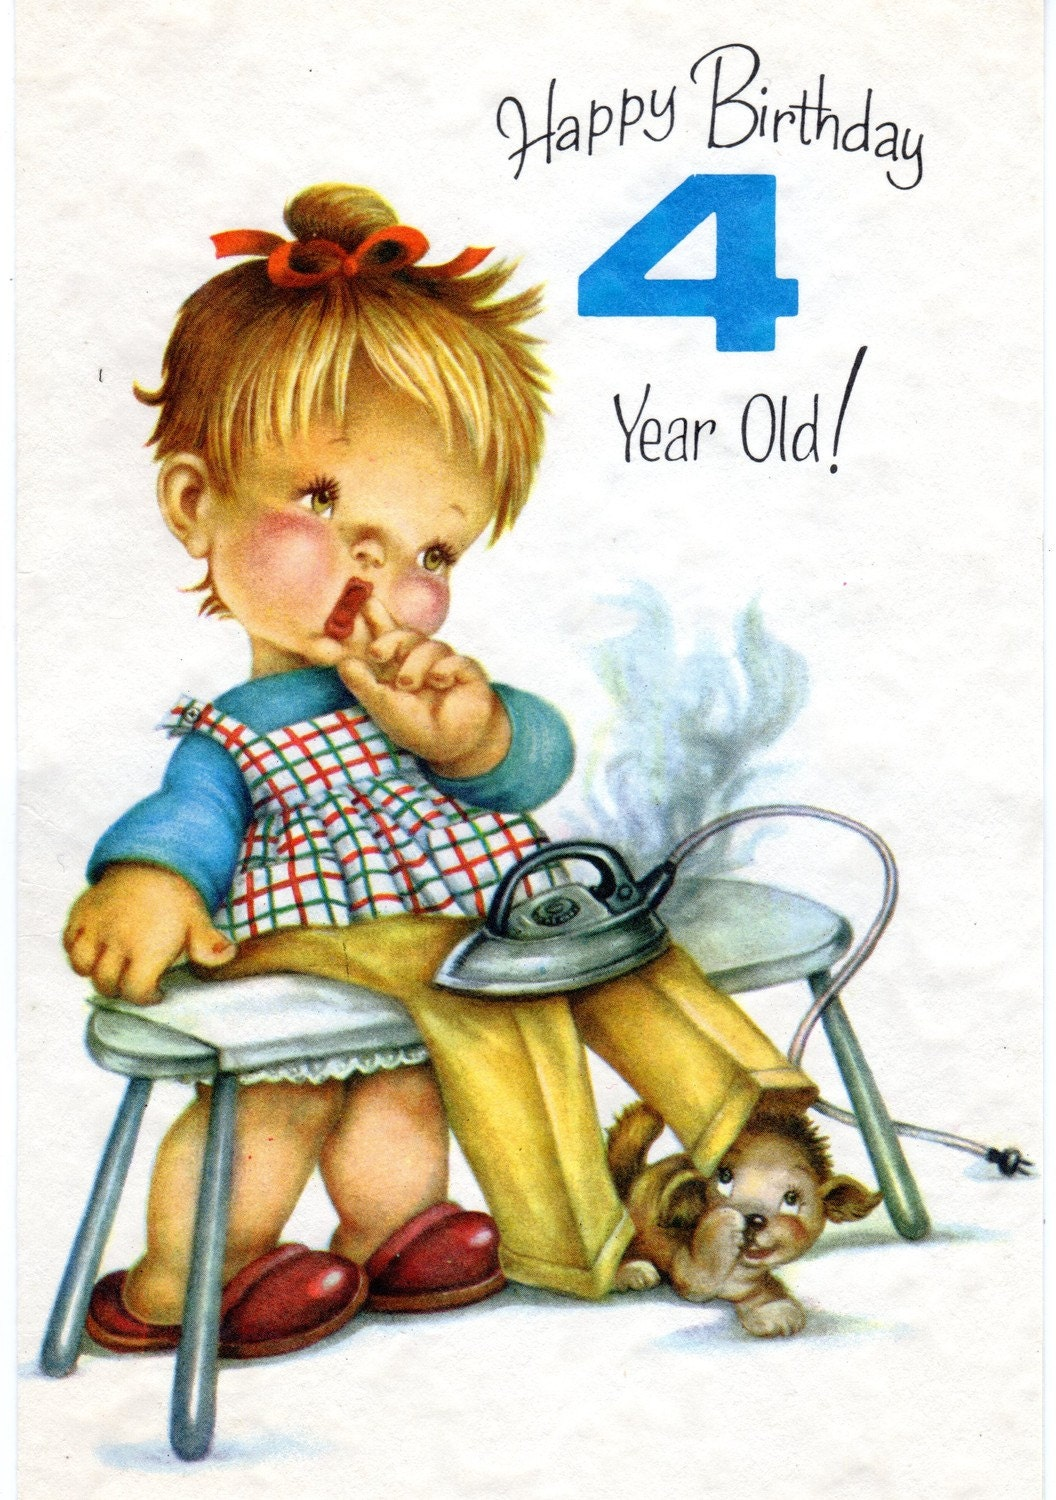 Vintage birthday greeting card for four year old child